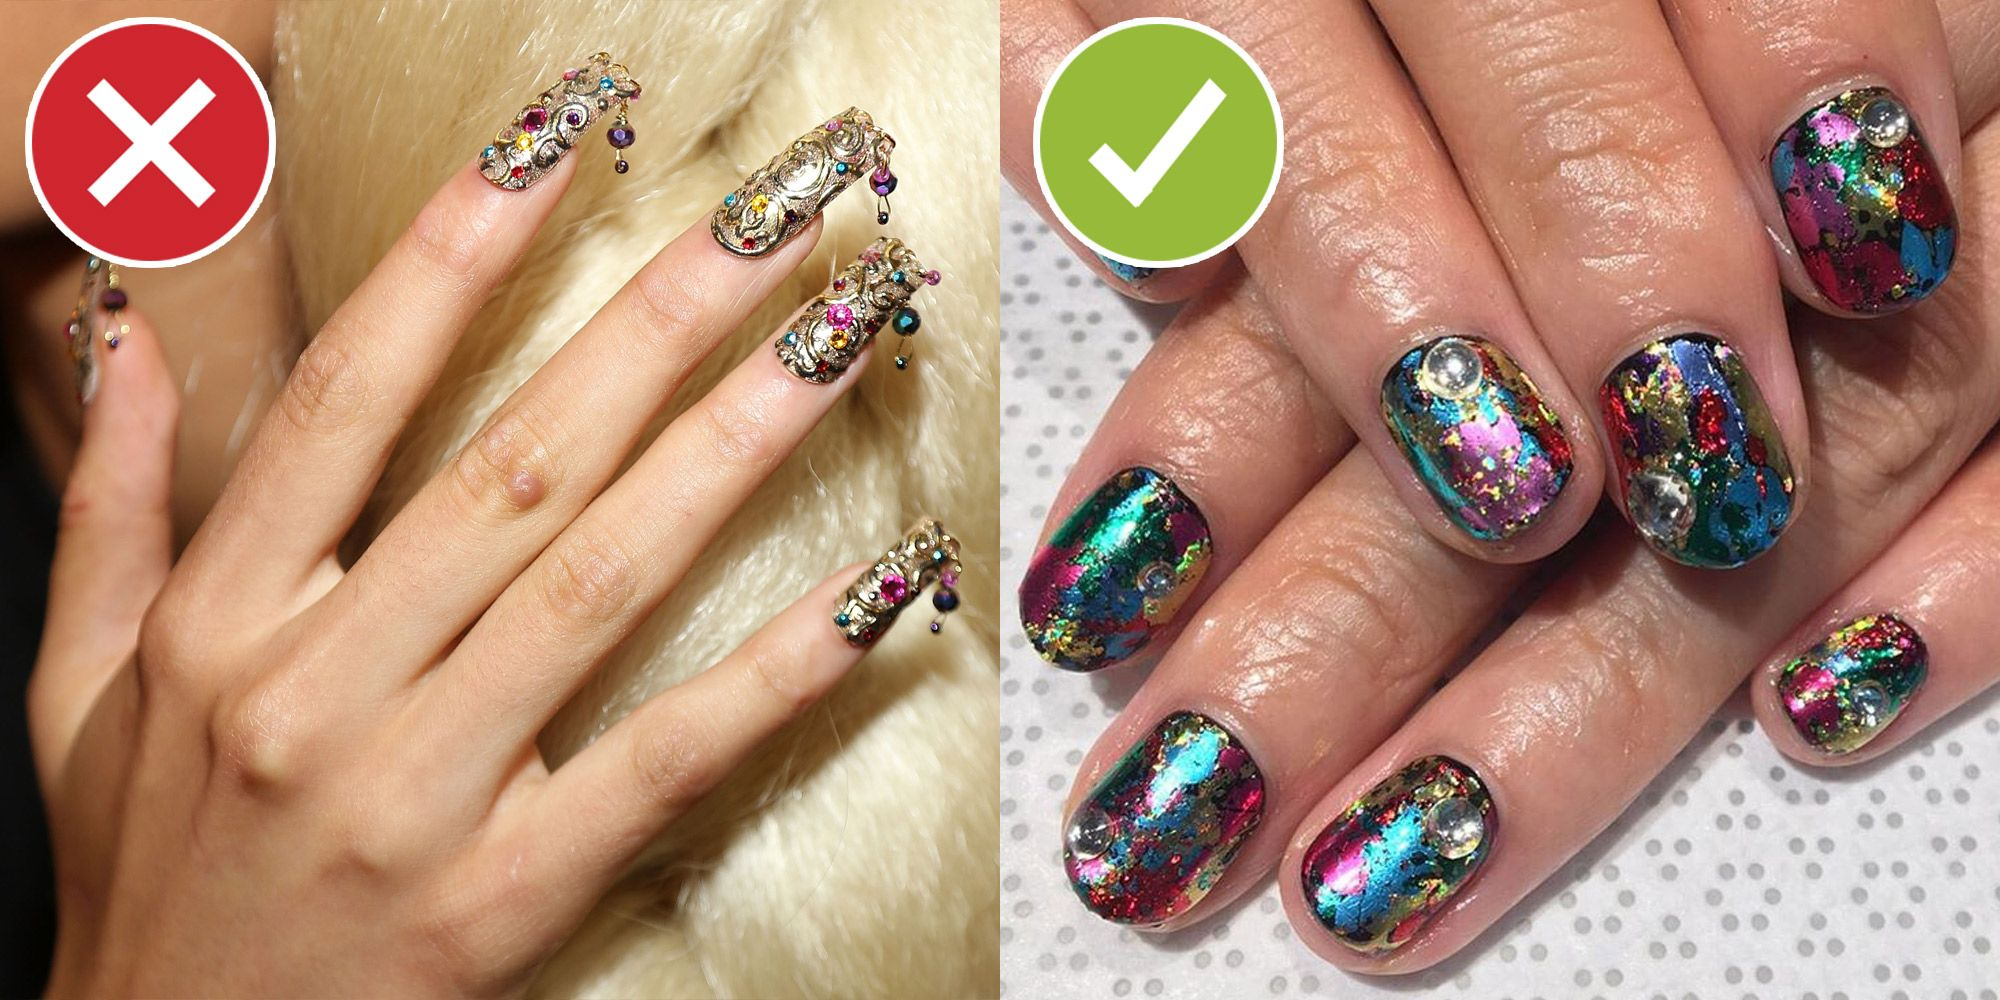 Outdated Nail Trends - New Nail Trends Spring 2016